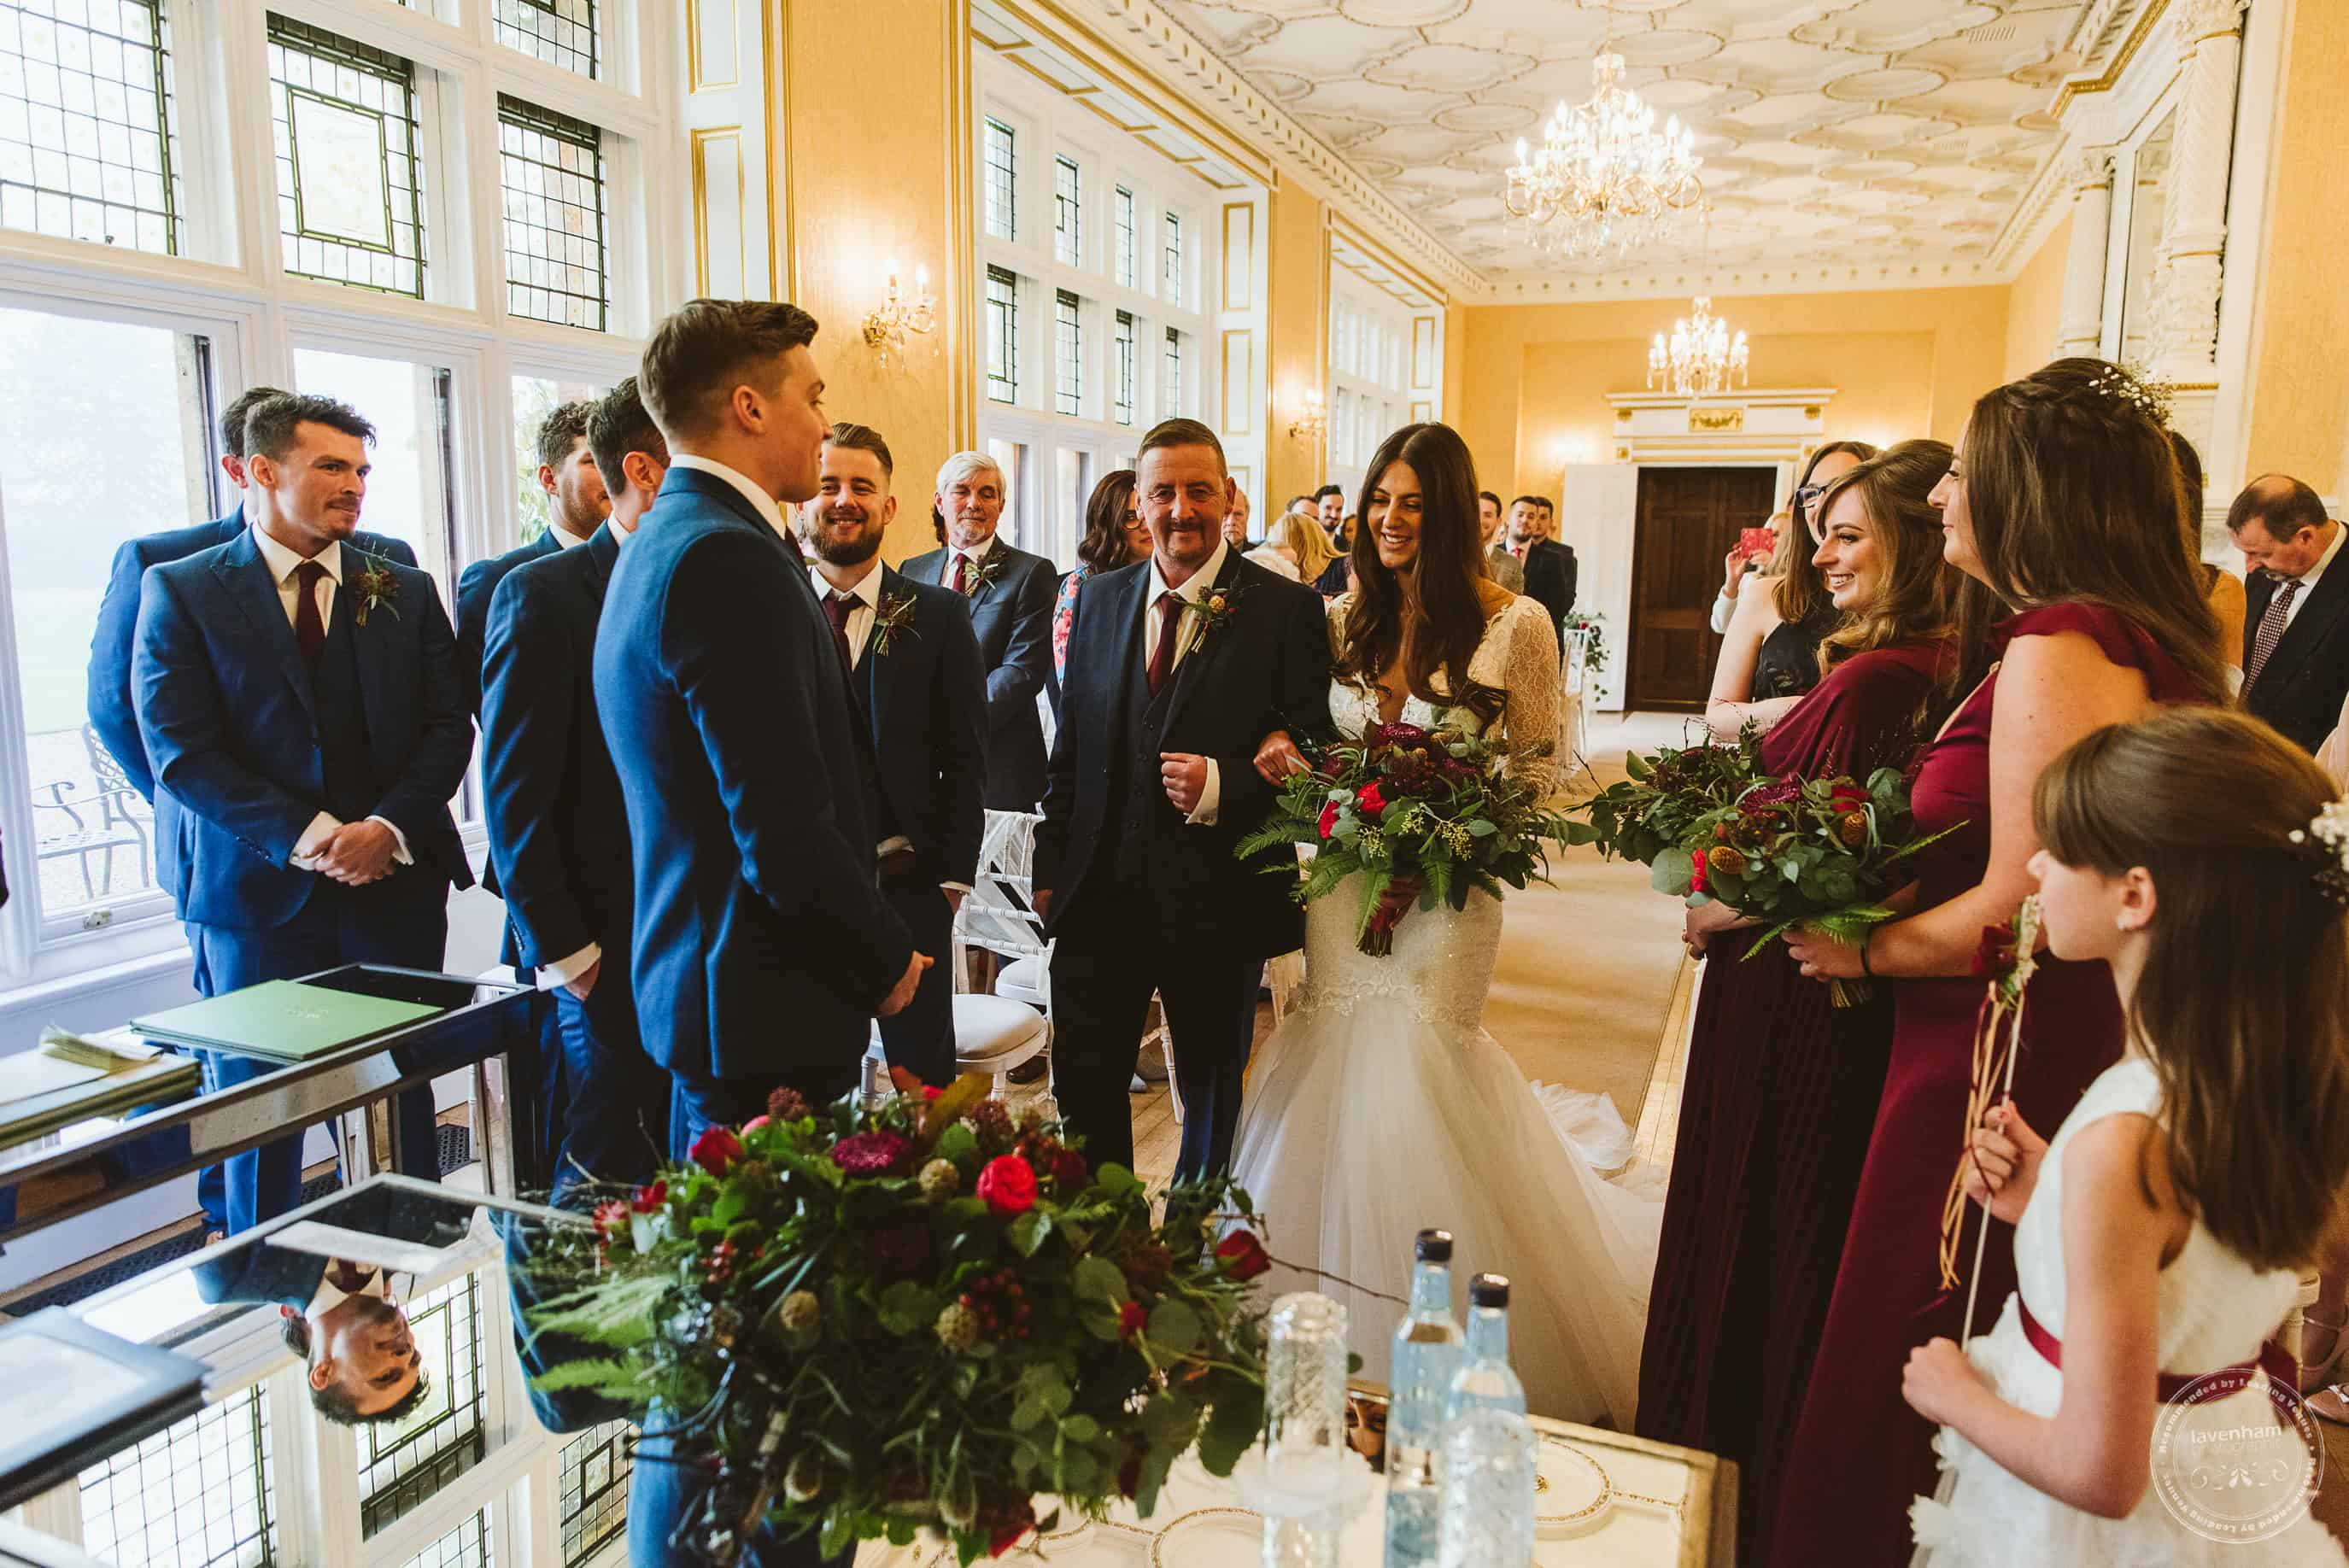 301119 Holmewood Hall Wedding Photographer 096